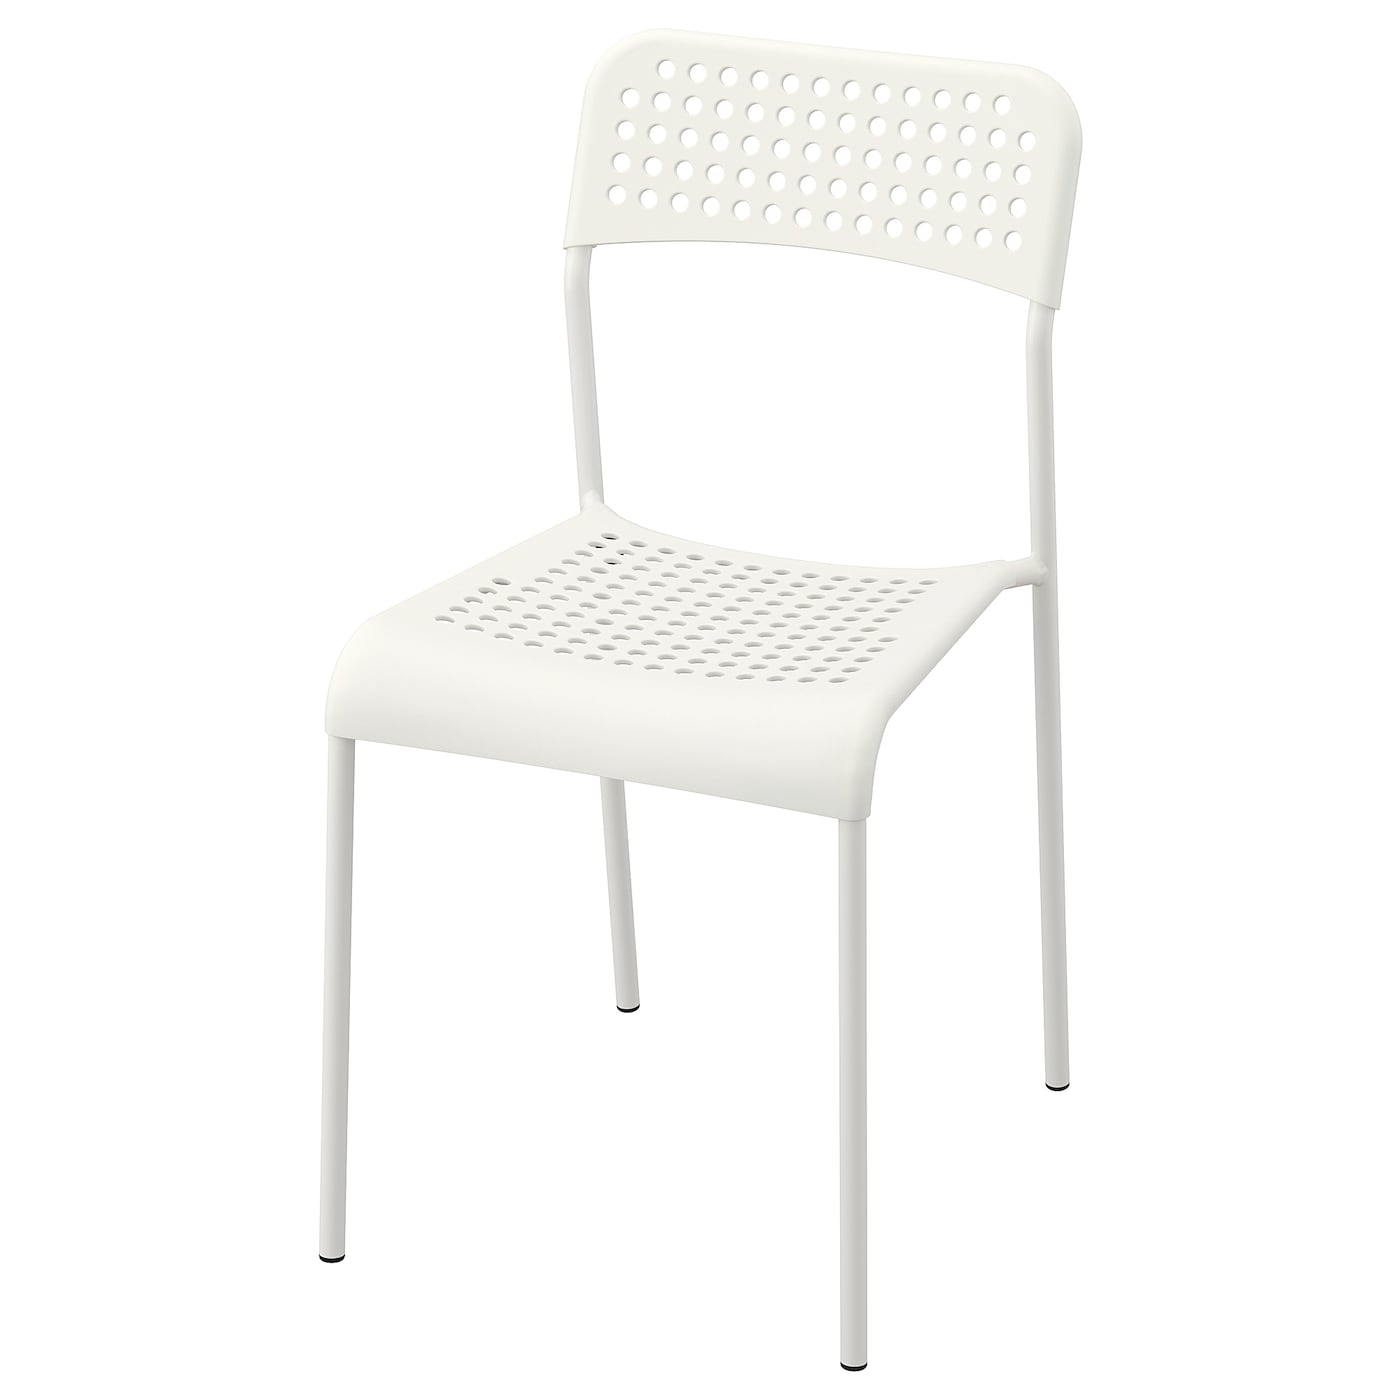 Chairs -Stools - Benches - IKEA